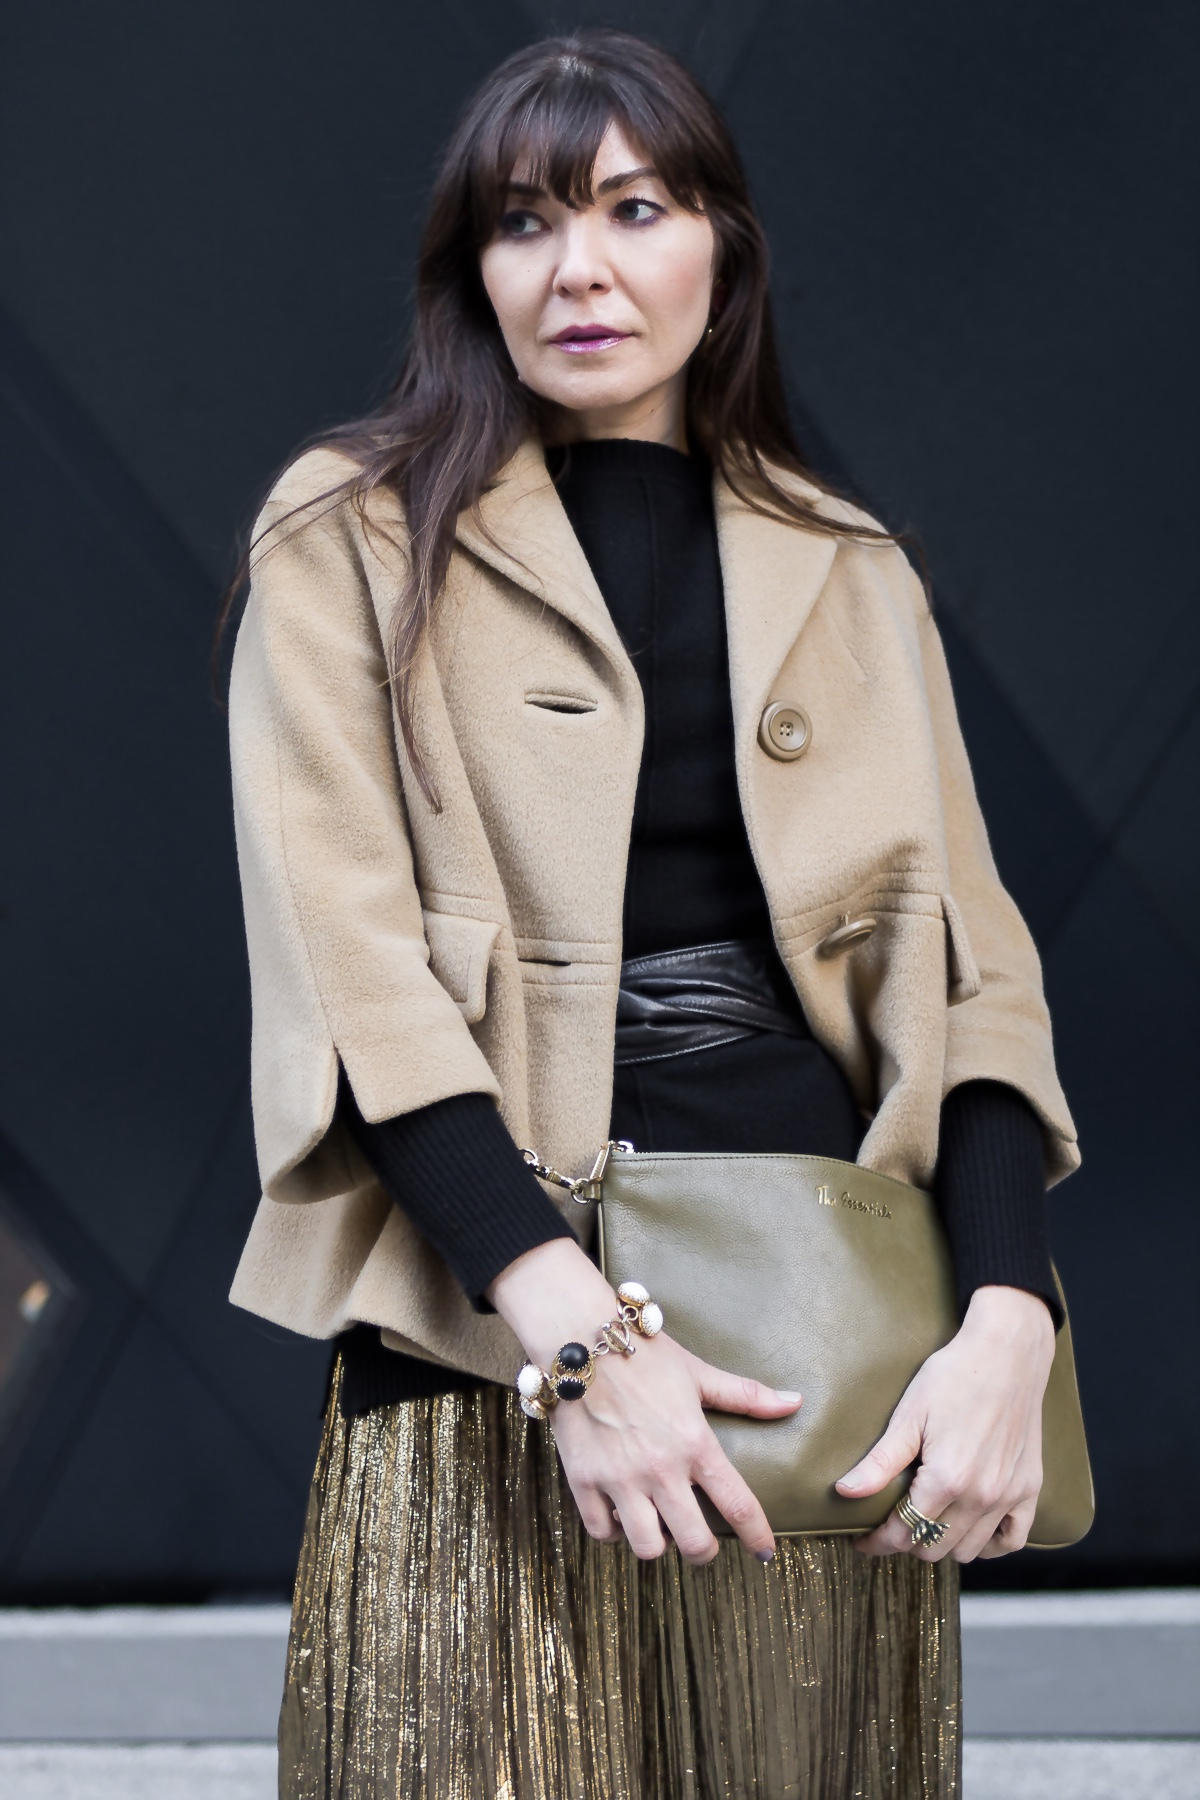 Lamé pleated dress and camel coat for day.